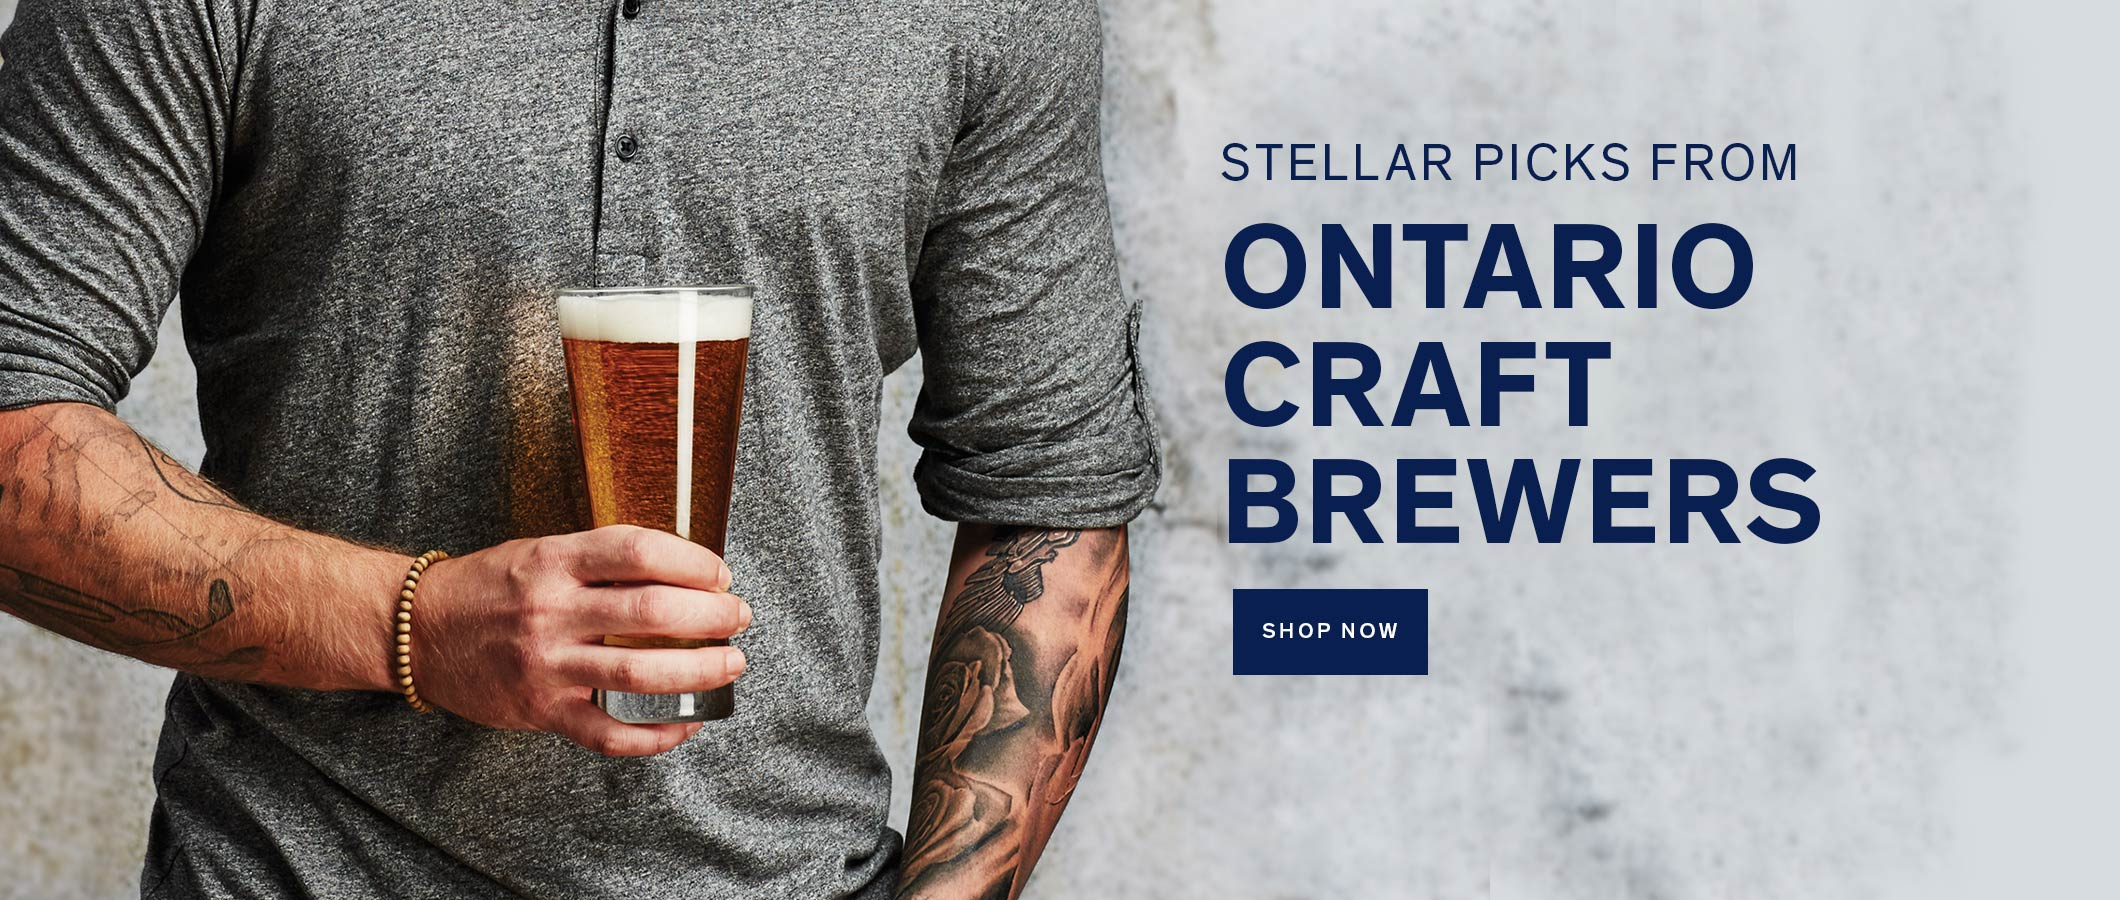 STELLAR PICKS FROM ONTARIO CRAFT BREWERS